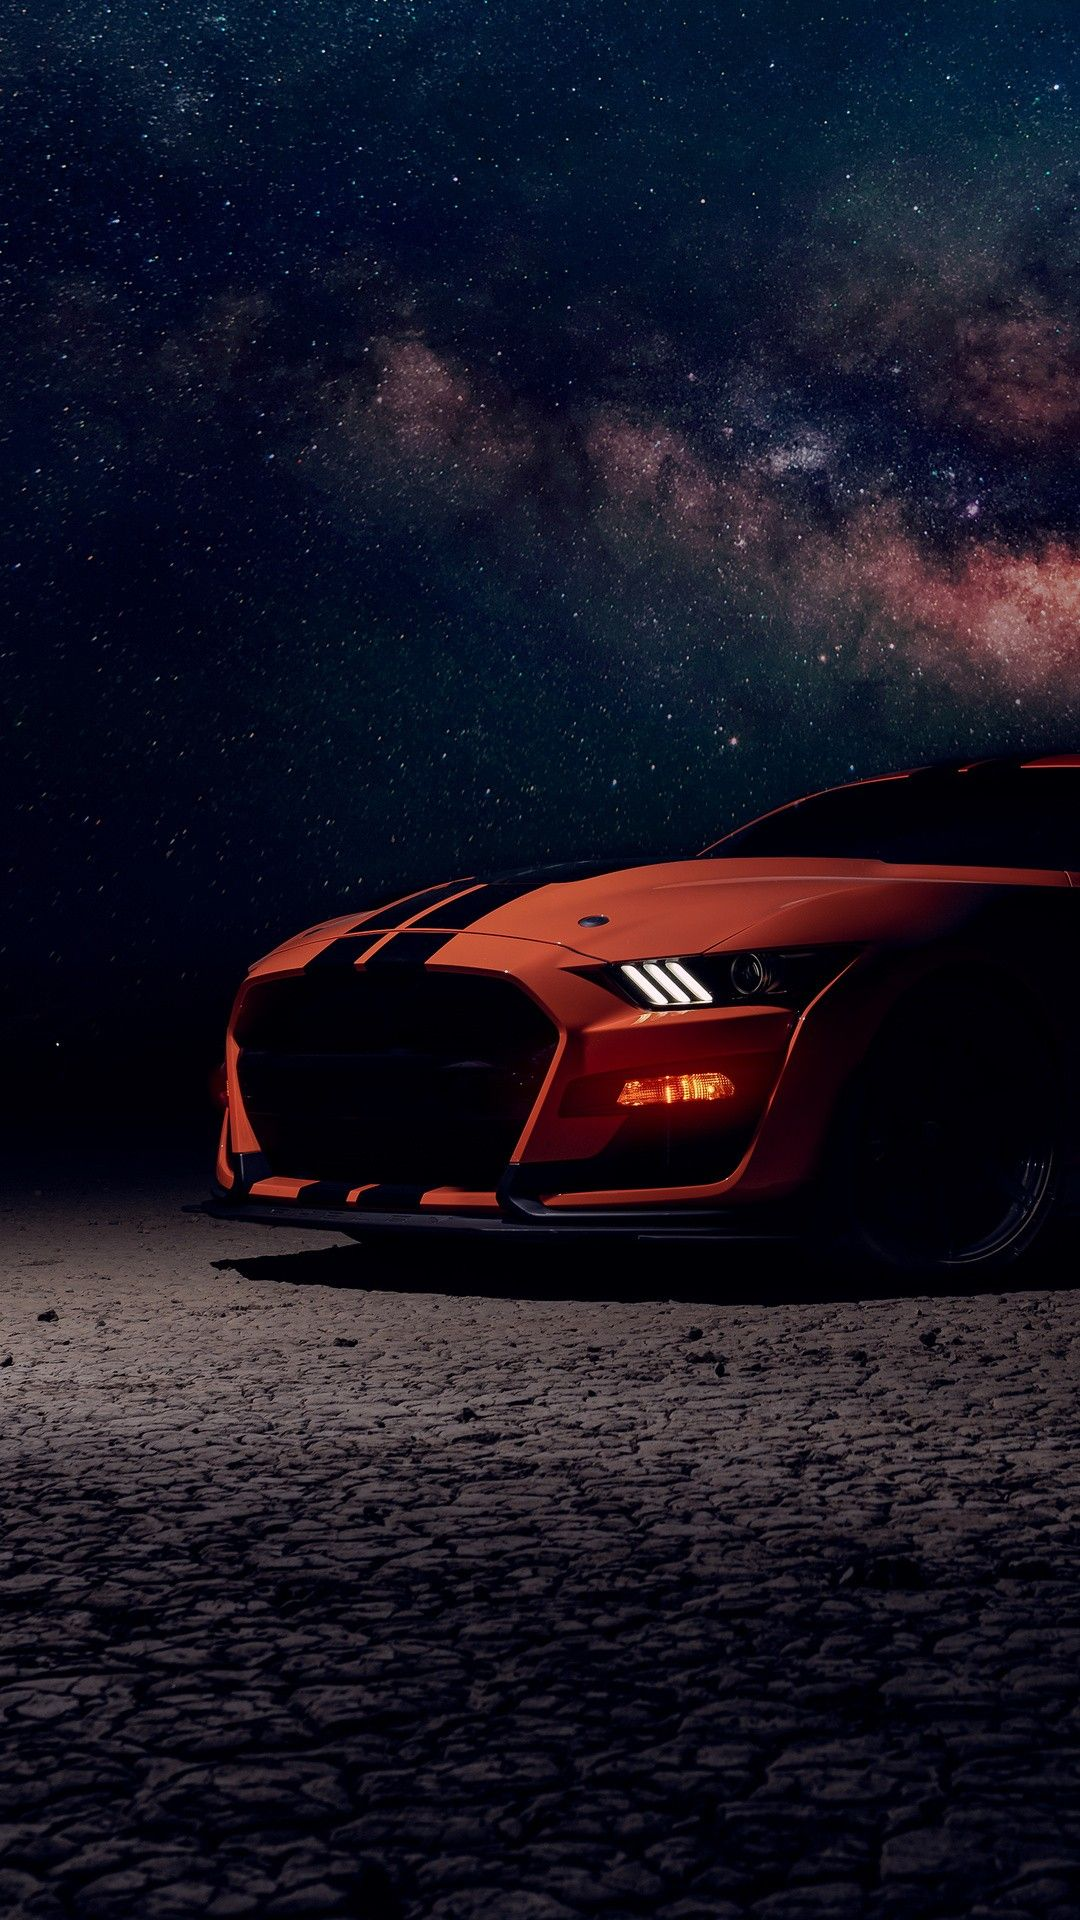 Cars Mobile Full Hd Wallpapers 1080x1920 In 2021 Mustang Wallpaper Car Iphone Wallpaper Sports Car Wallpaper